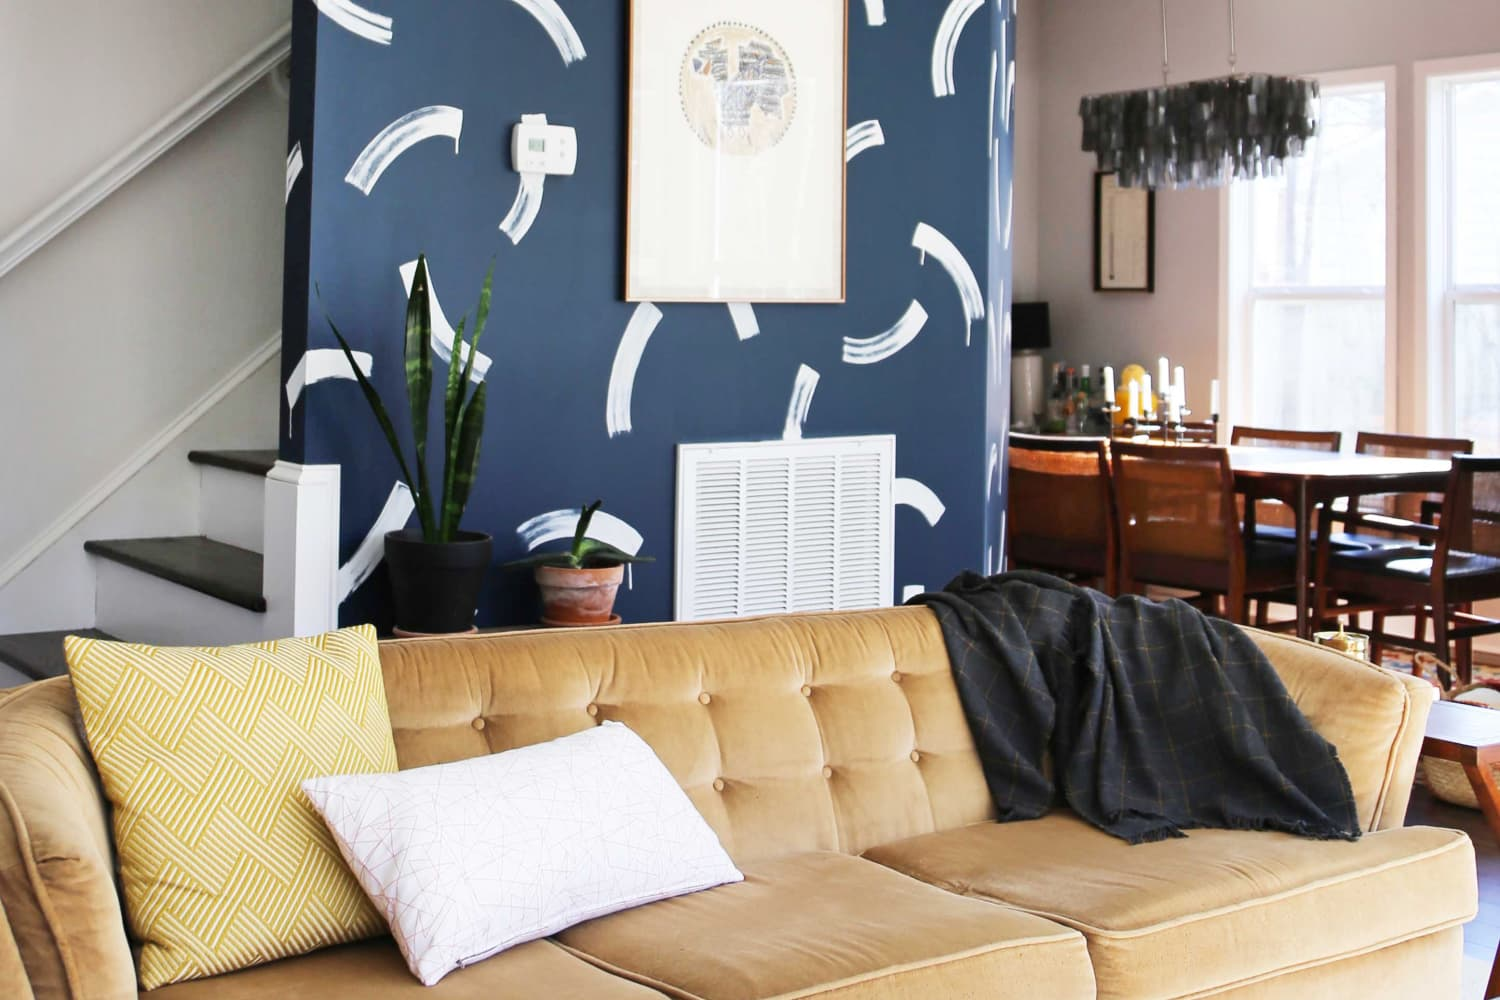 Paint and Personality Transform This Cookie-Cutter New Build House